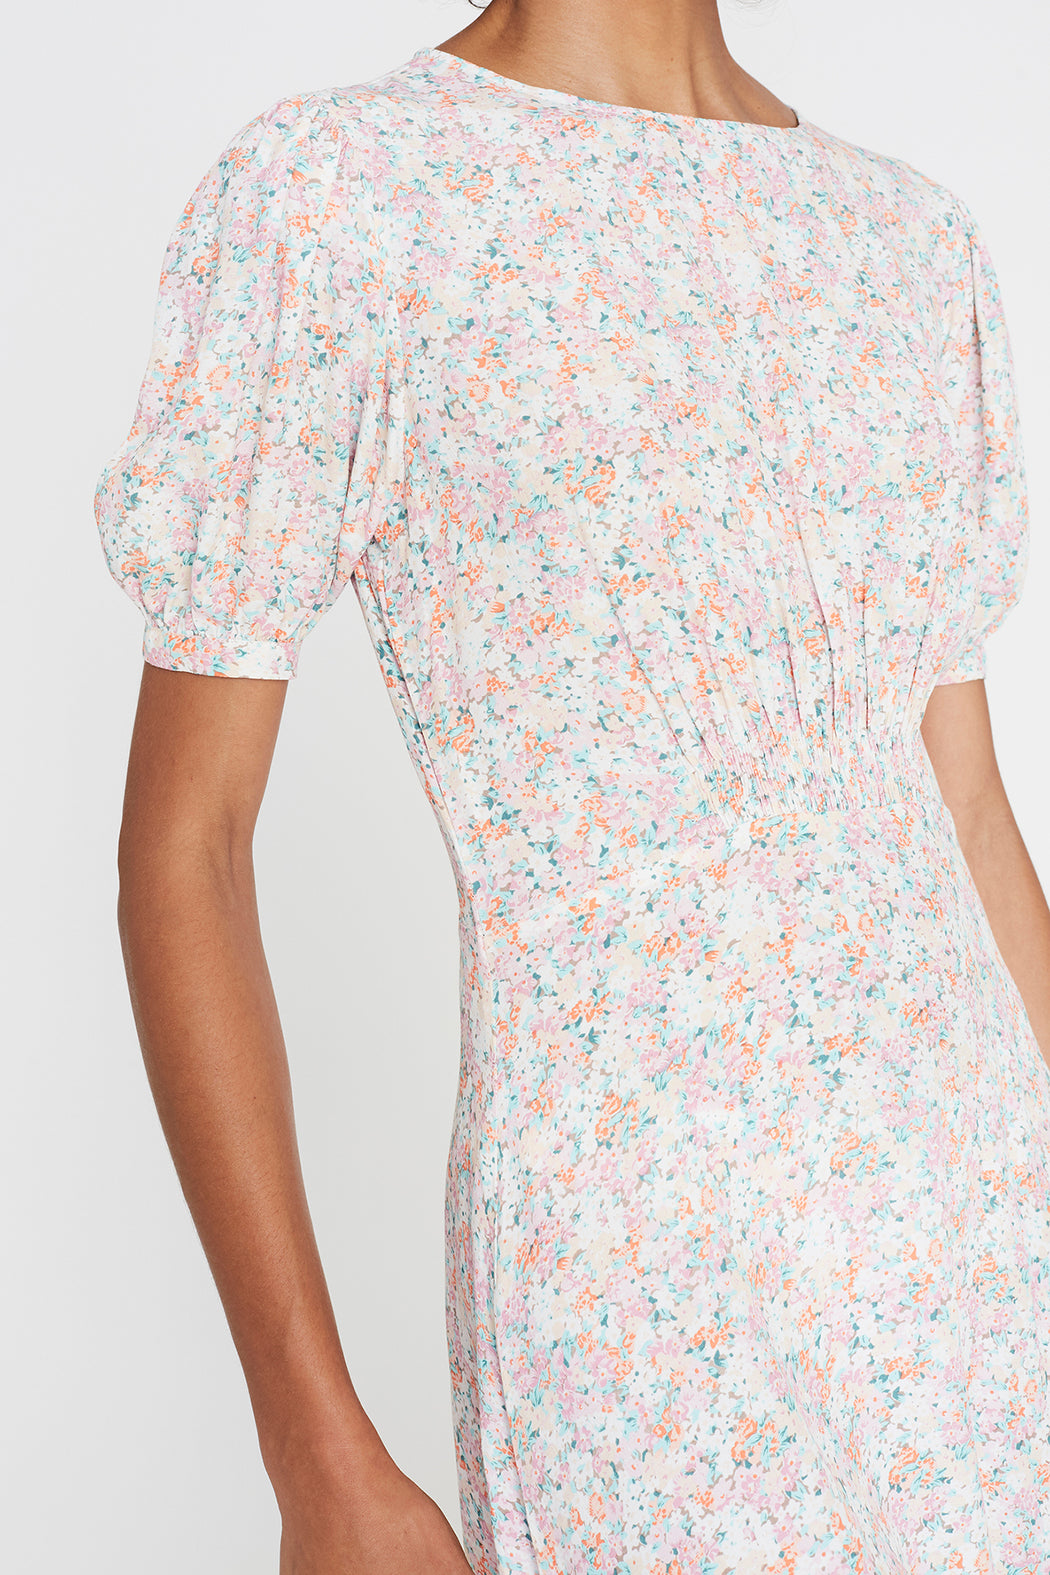 Faithfull the Brand Beline Midi Dress in Vionette Floral Pink